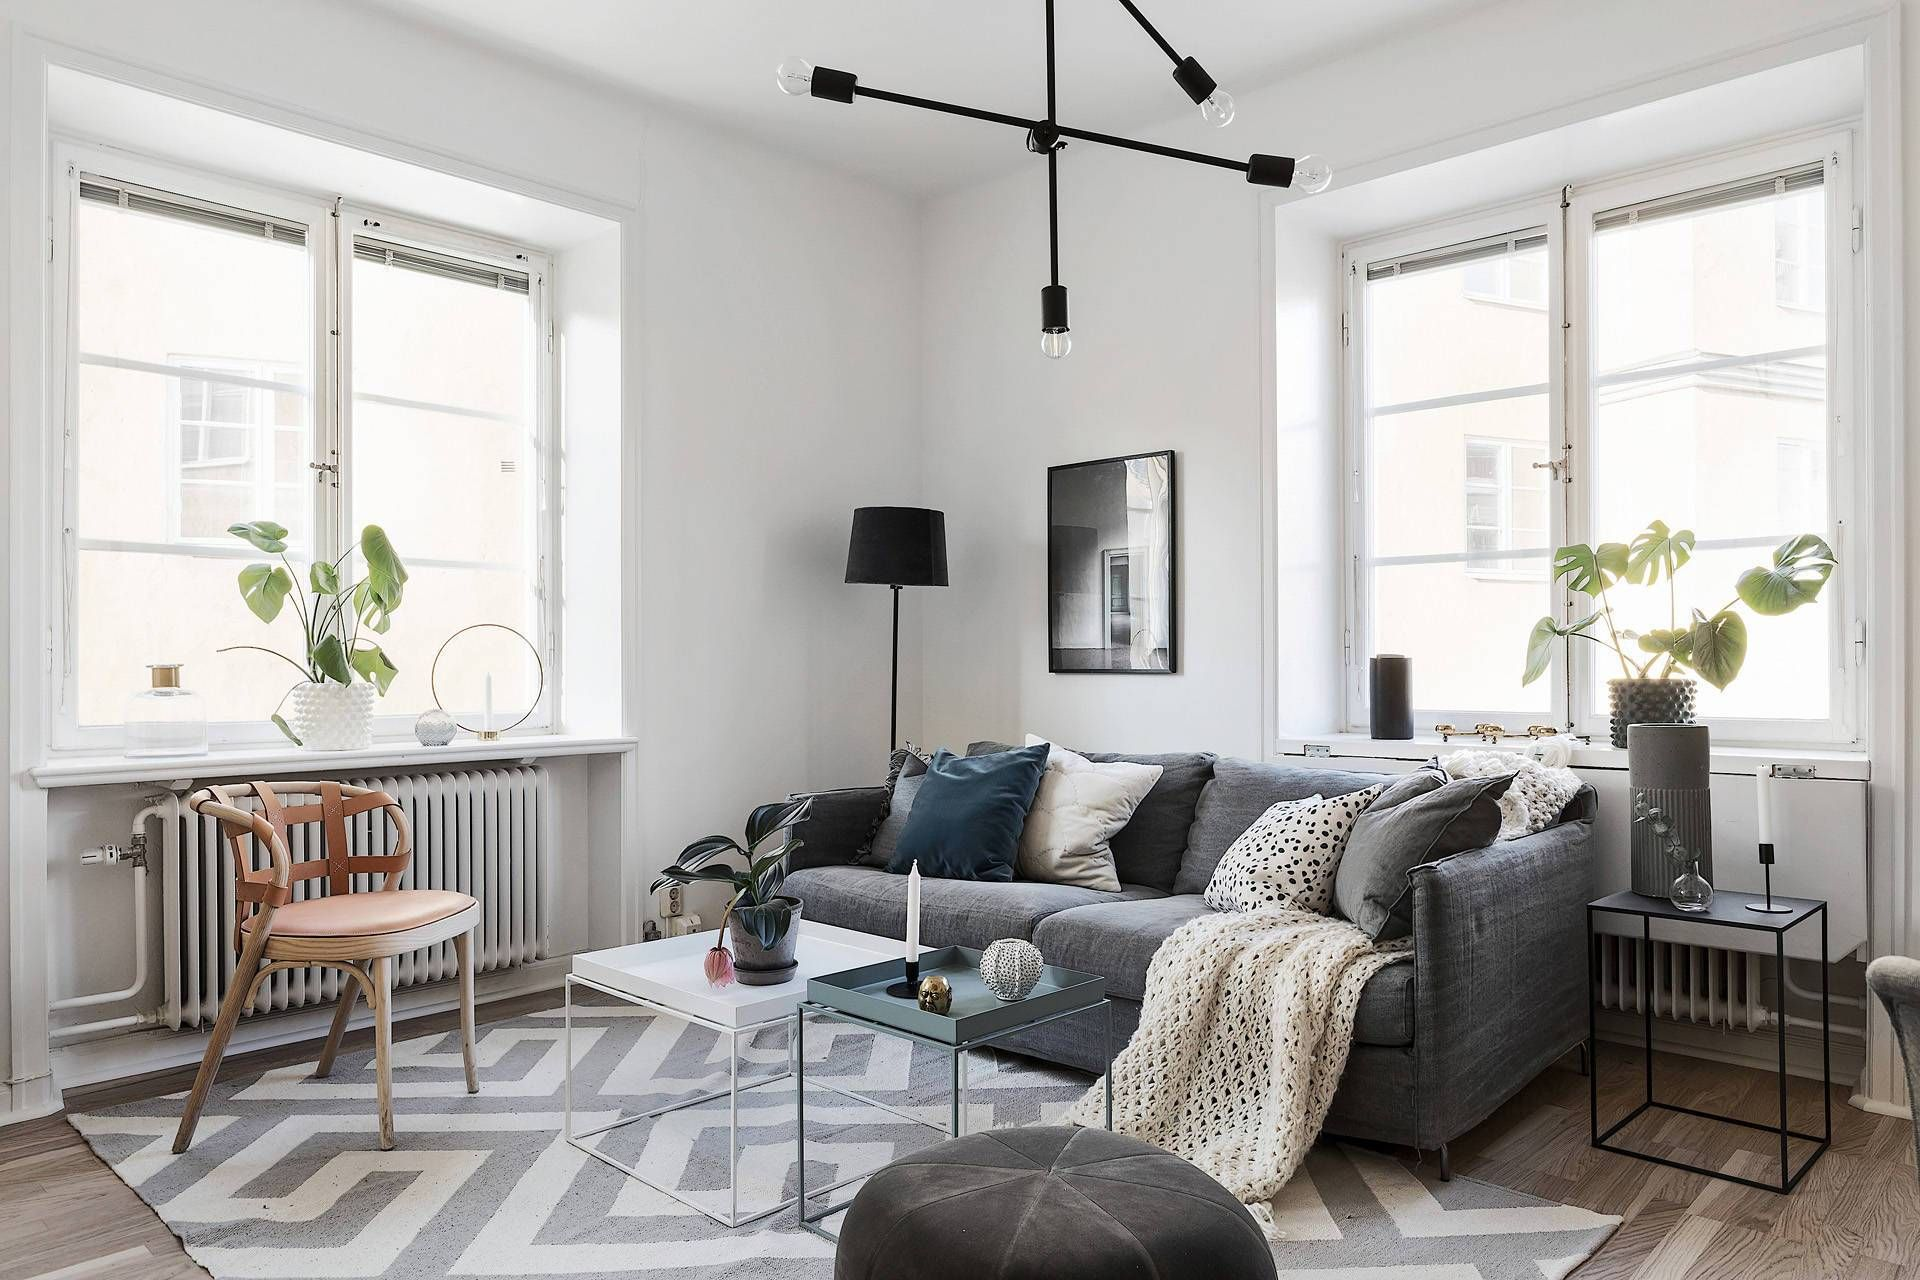 Room Redo Industrial Scandi Chic Living Room By Posh Pennies Industrial Chic Living Room Scandi Living Room Chic Living Room